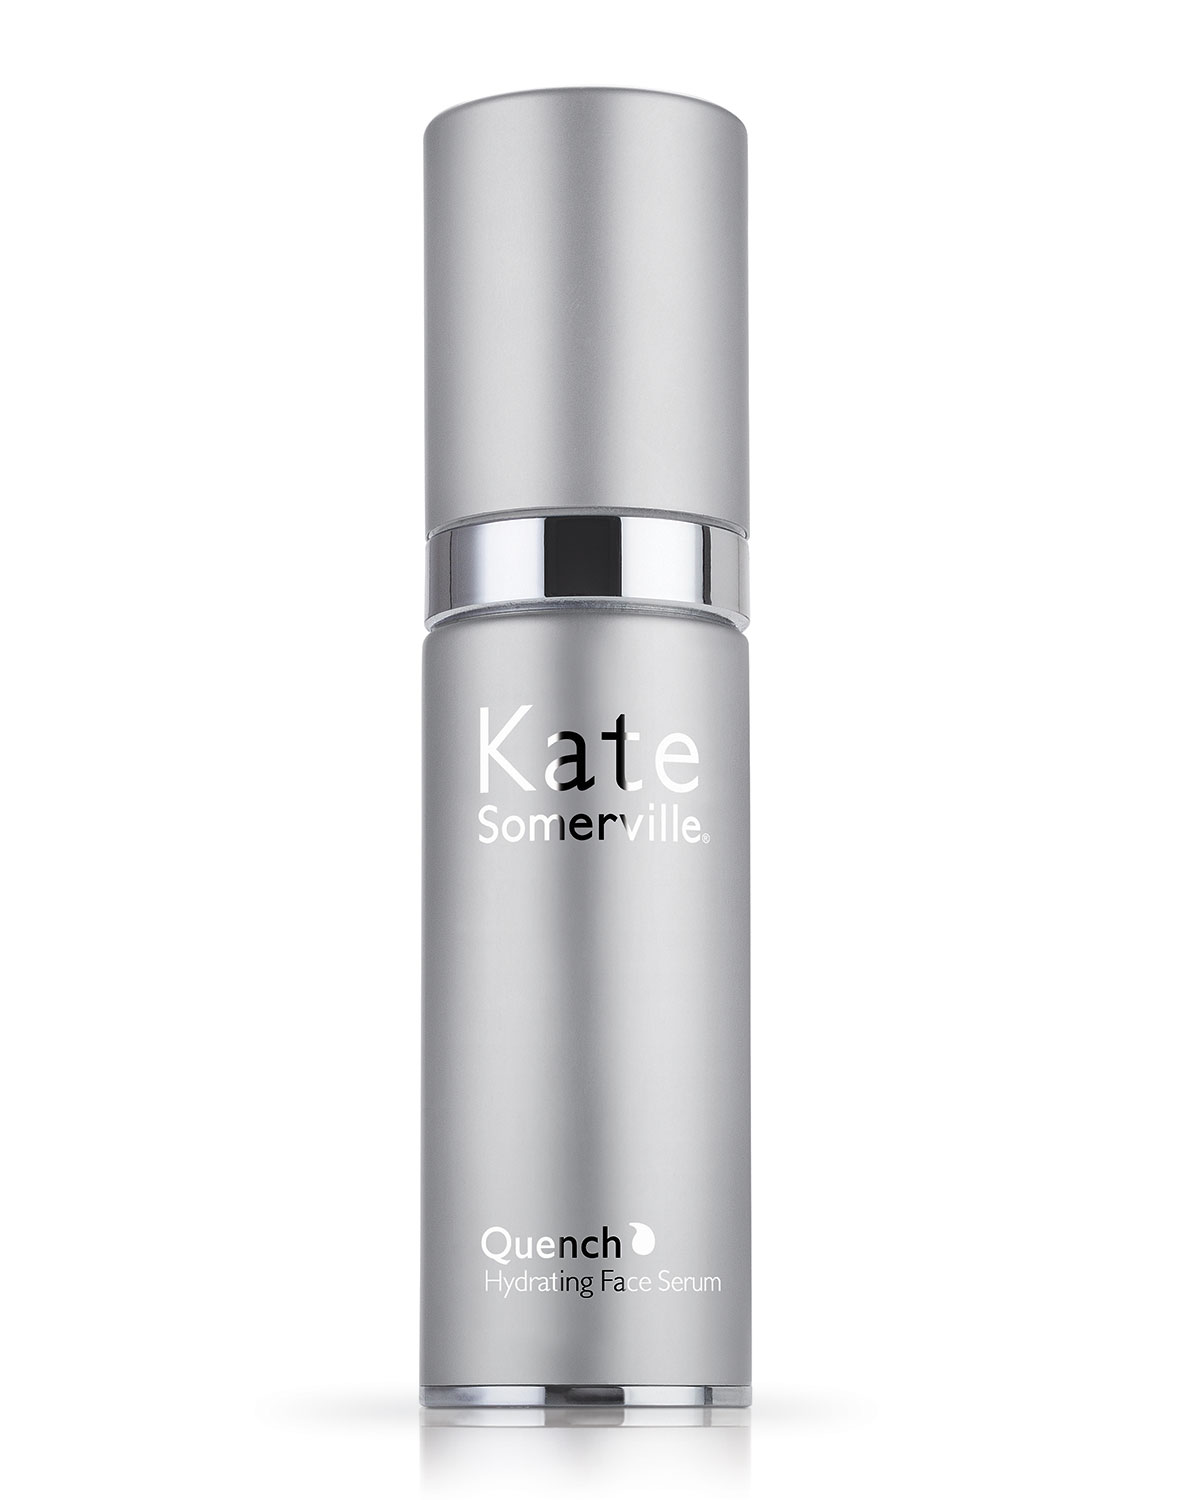 1 oz. Quench Hydrating Face Serum